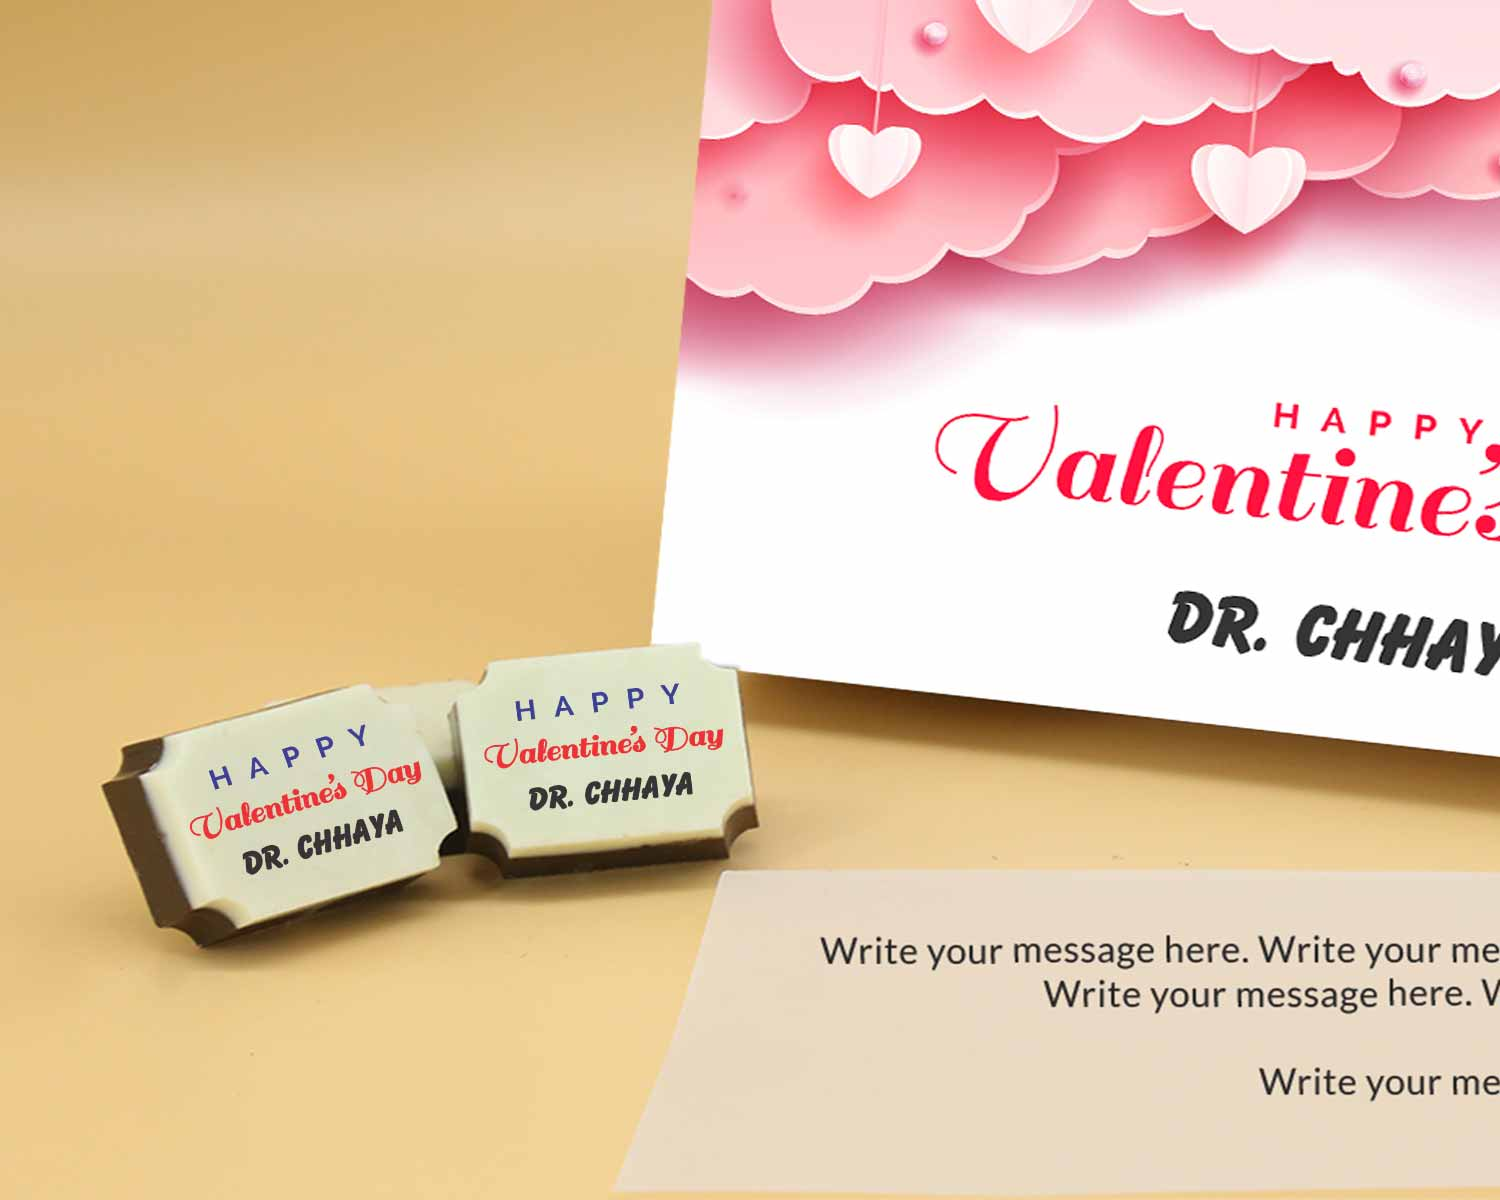 Personalized Chocolate in Hyderabad chocolate box Valentaine Day 08RAPC